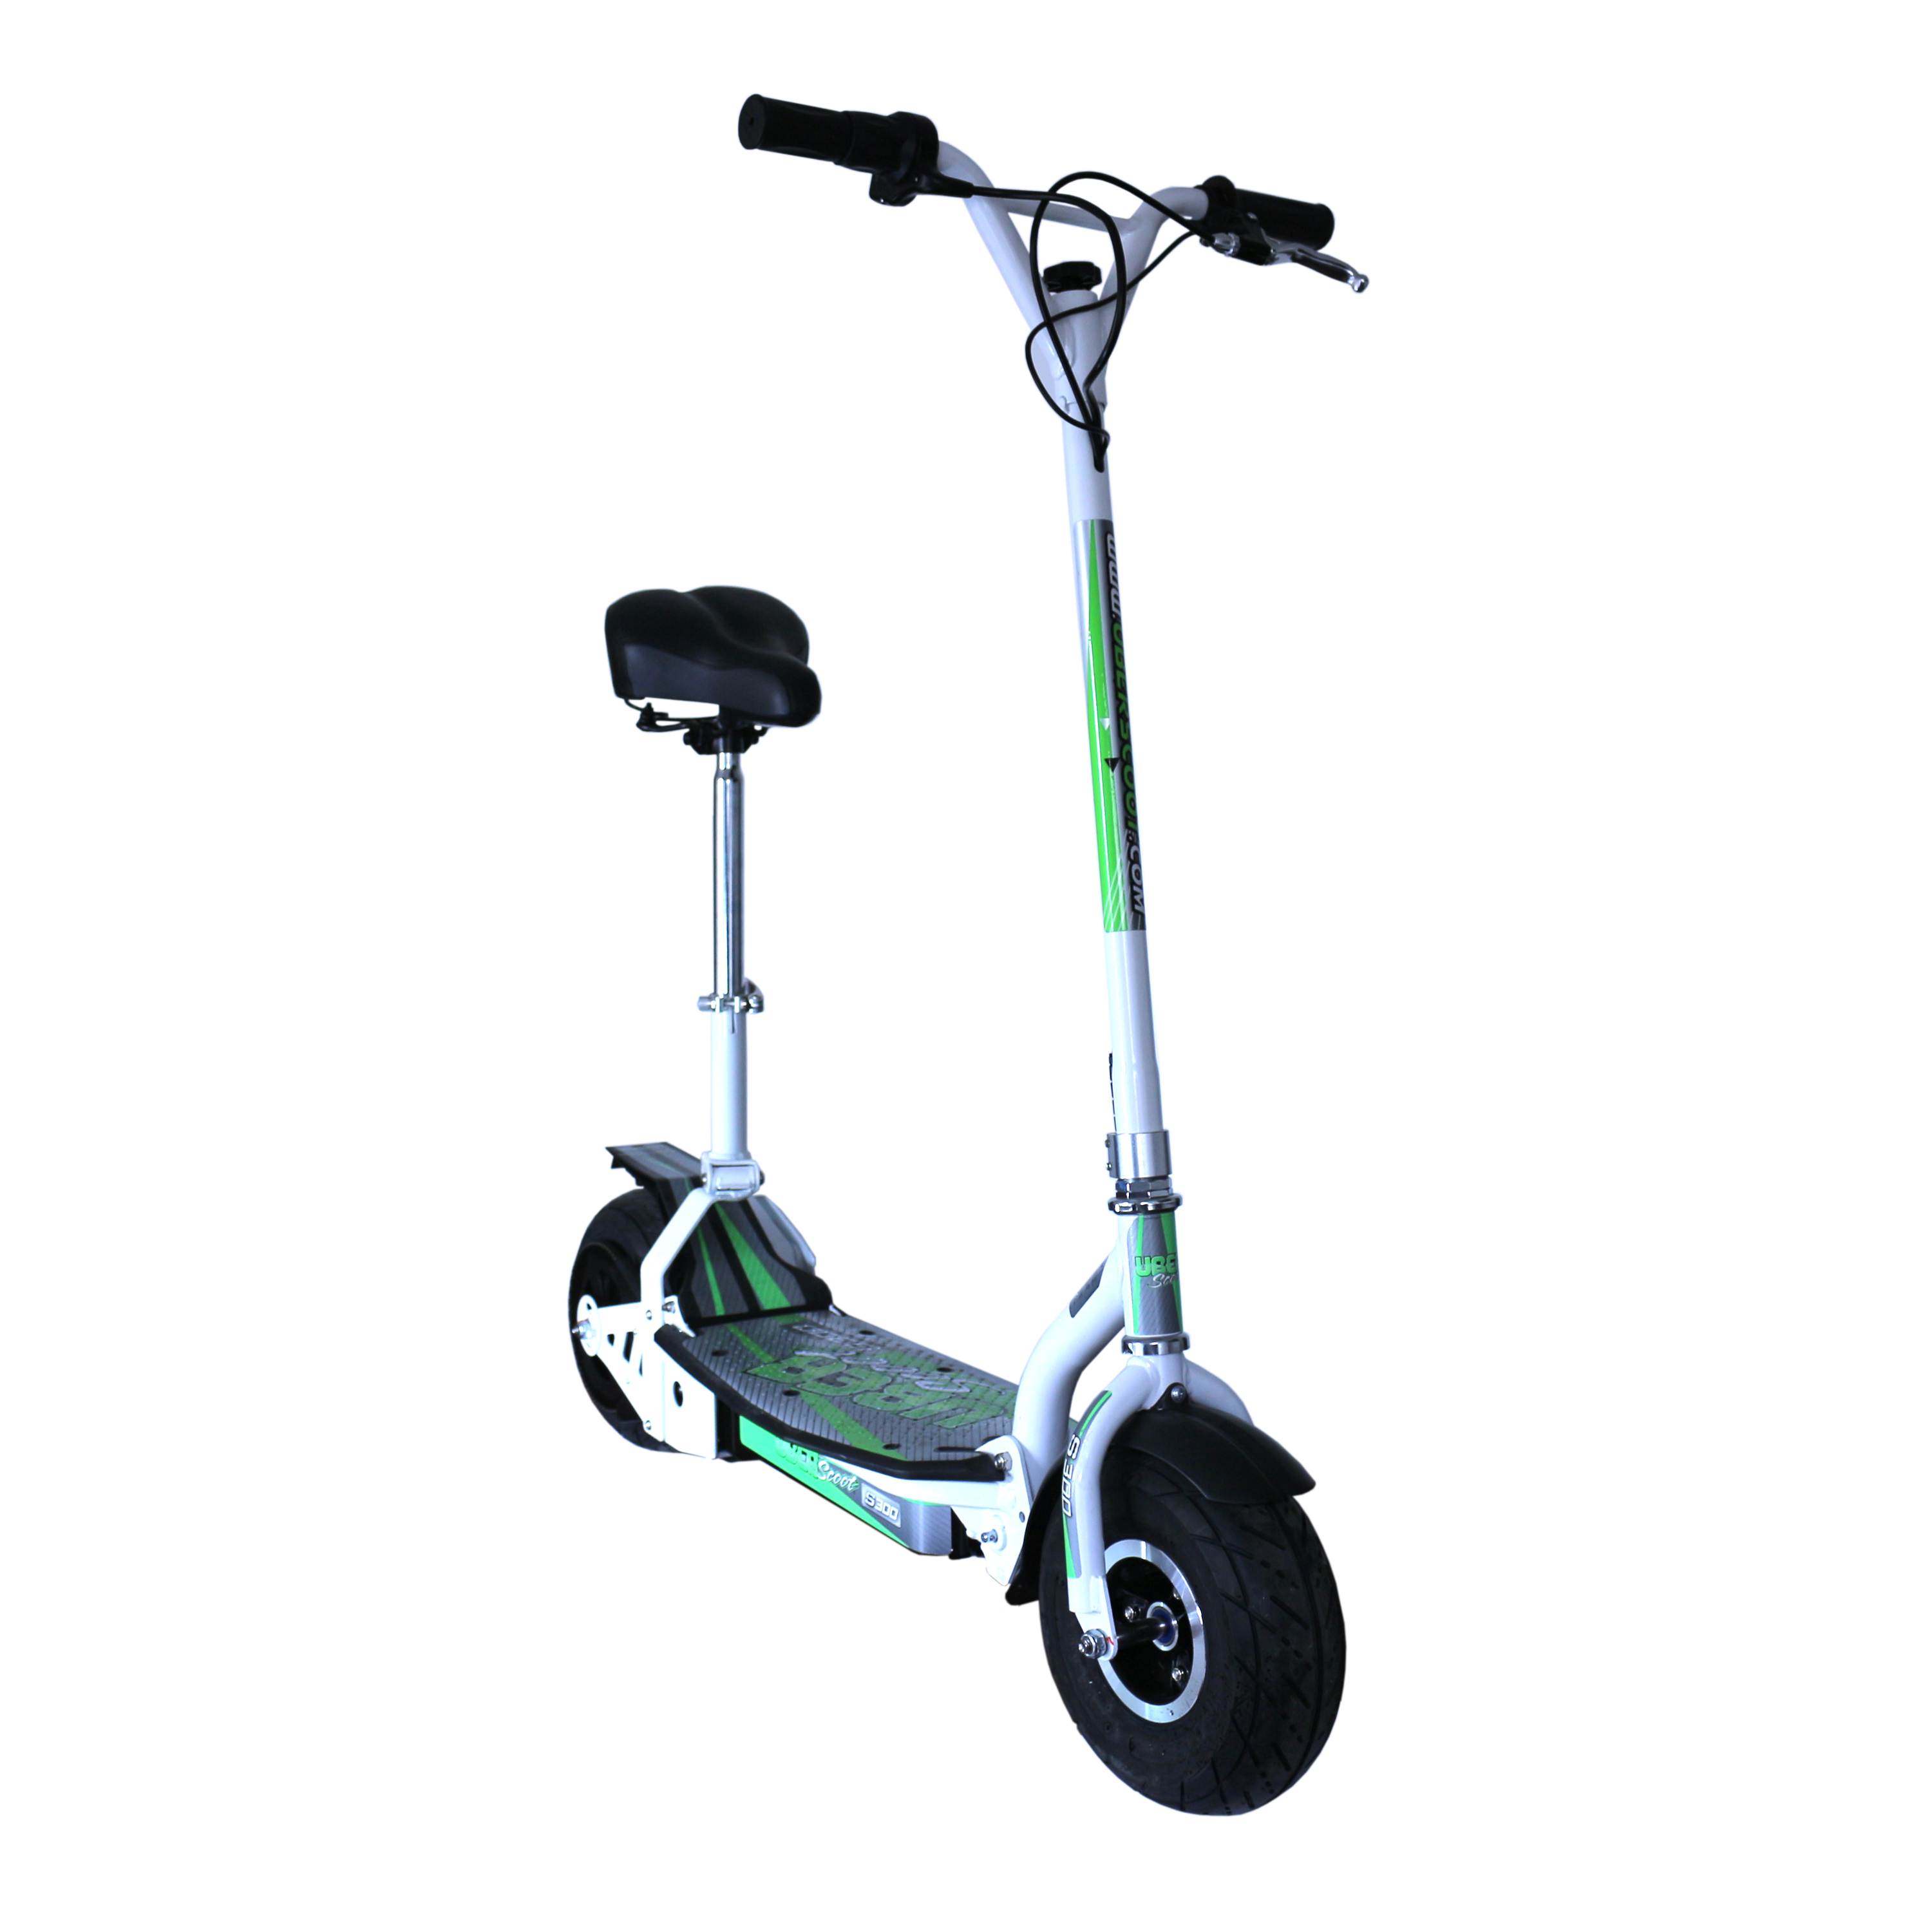 scooter_inflado_1